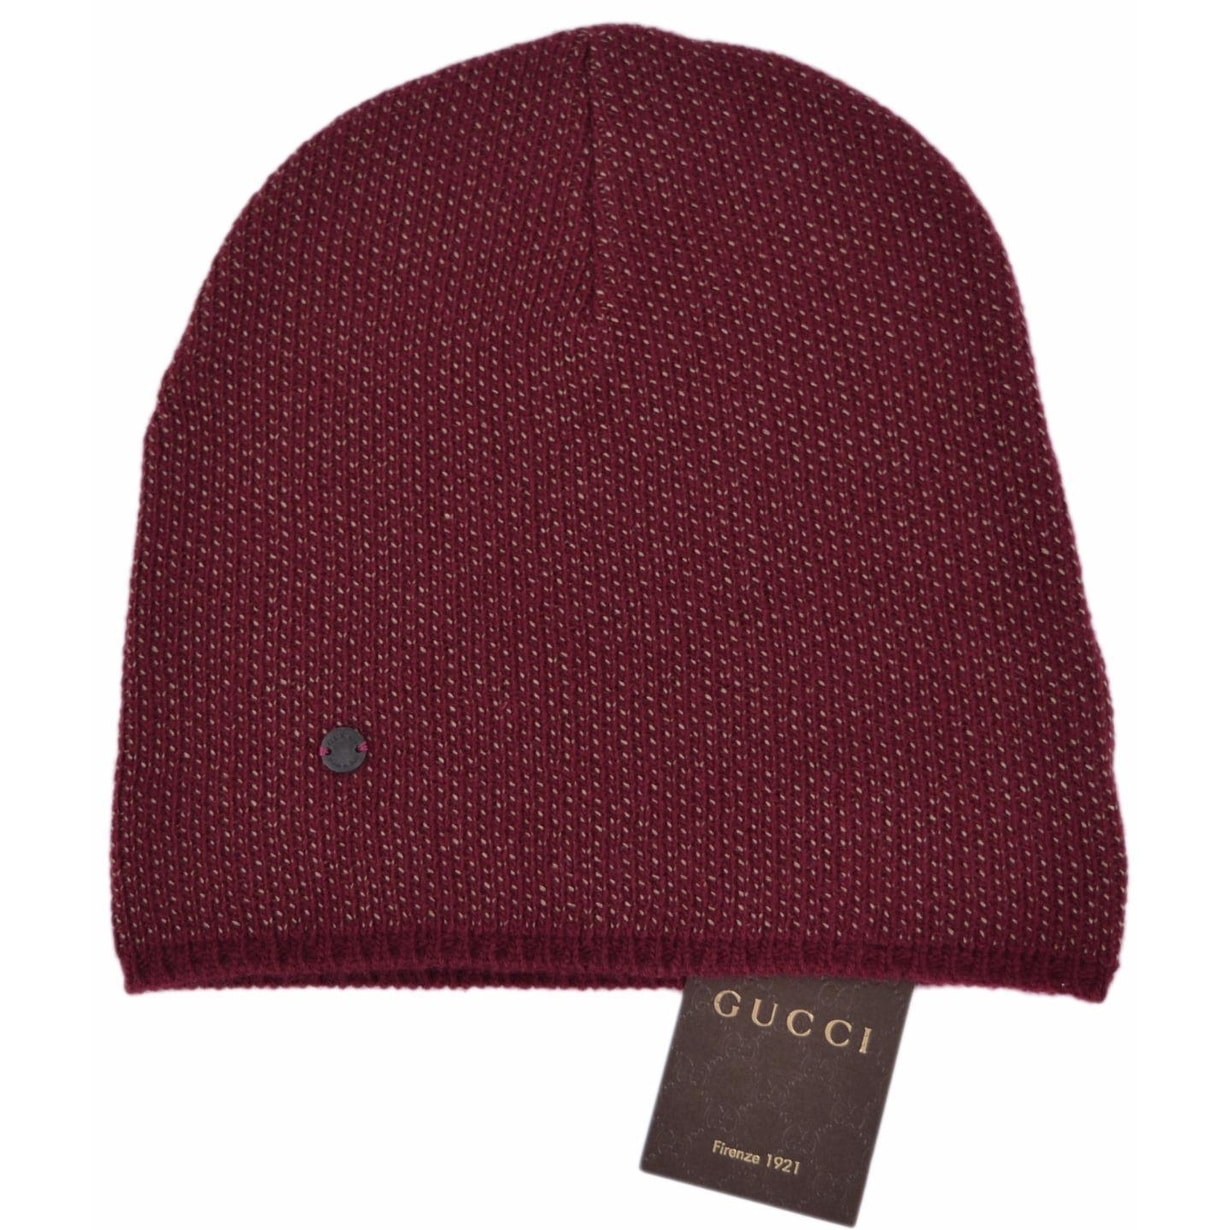 1cc2a554206f0e Shop Gucci 352350 Men's Burgundy Beige Wool Cashmere Beanie Ski Winter Hat  Large - Free Shipping Today - Overstock - 13750019